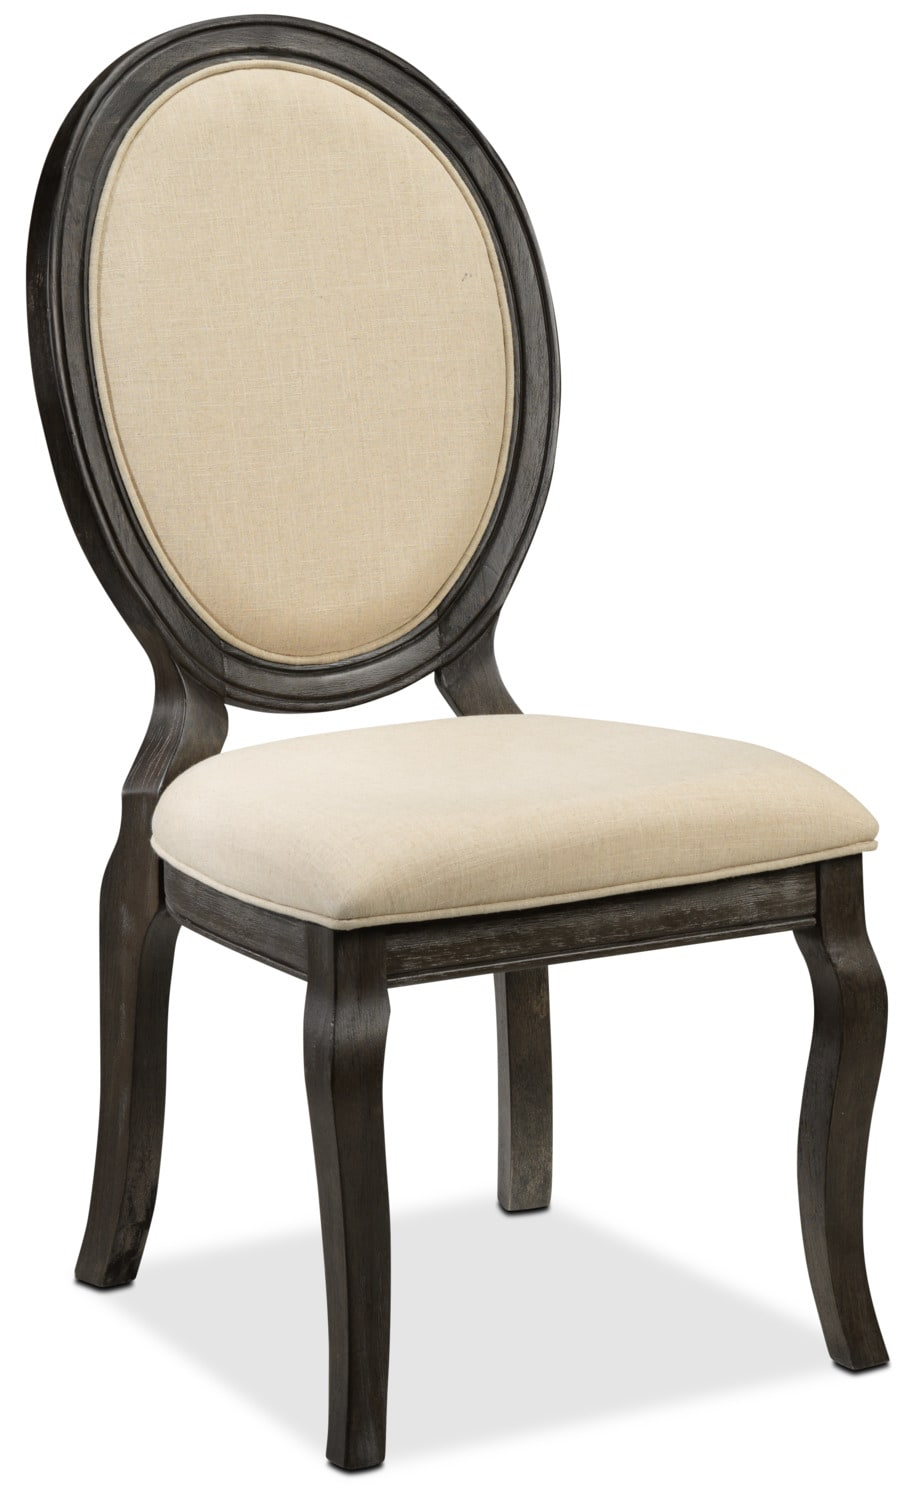 Victoria Side Chair - Grey and Beige